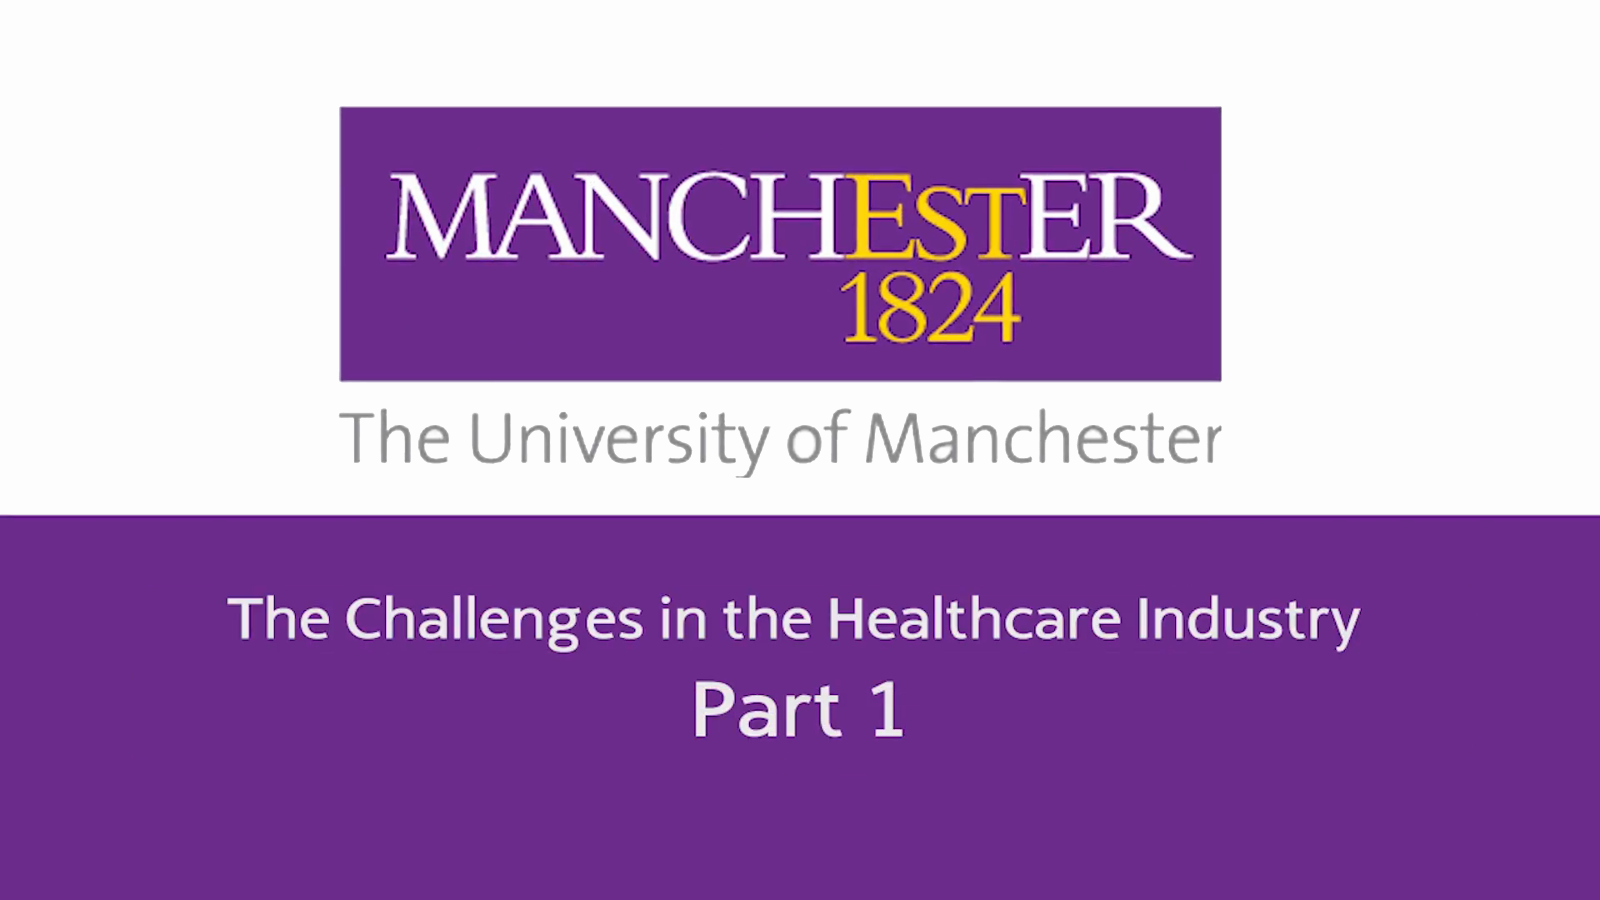 The Challenges in the Healthcare Industry - Part 1